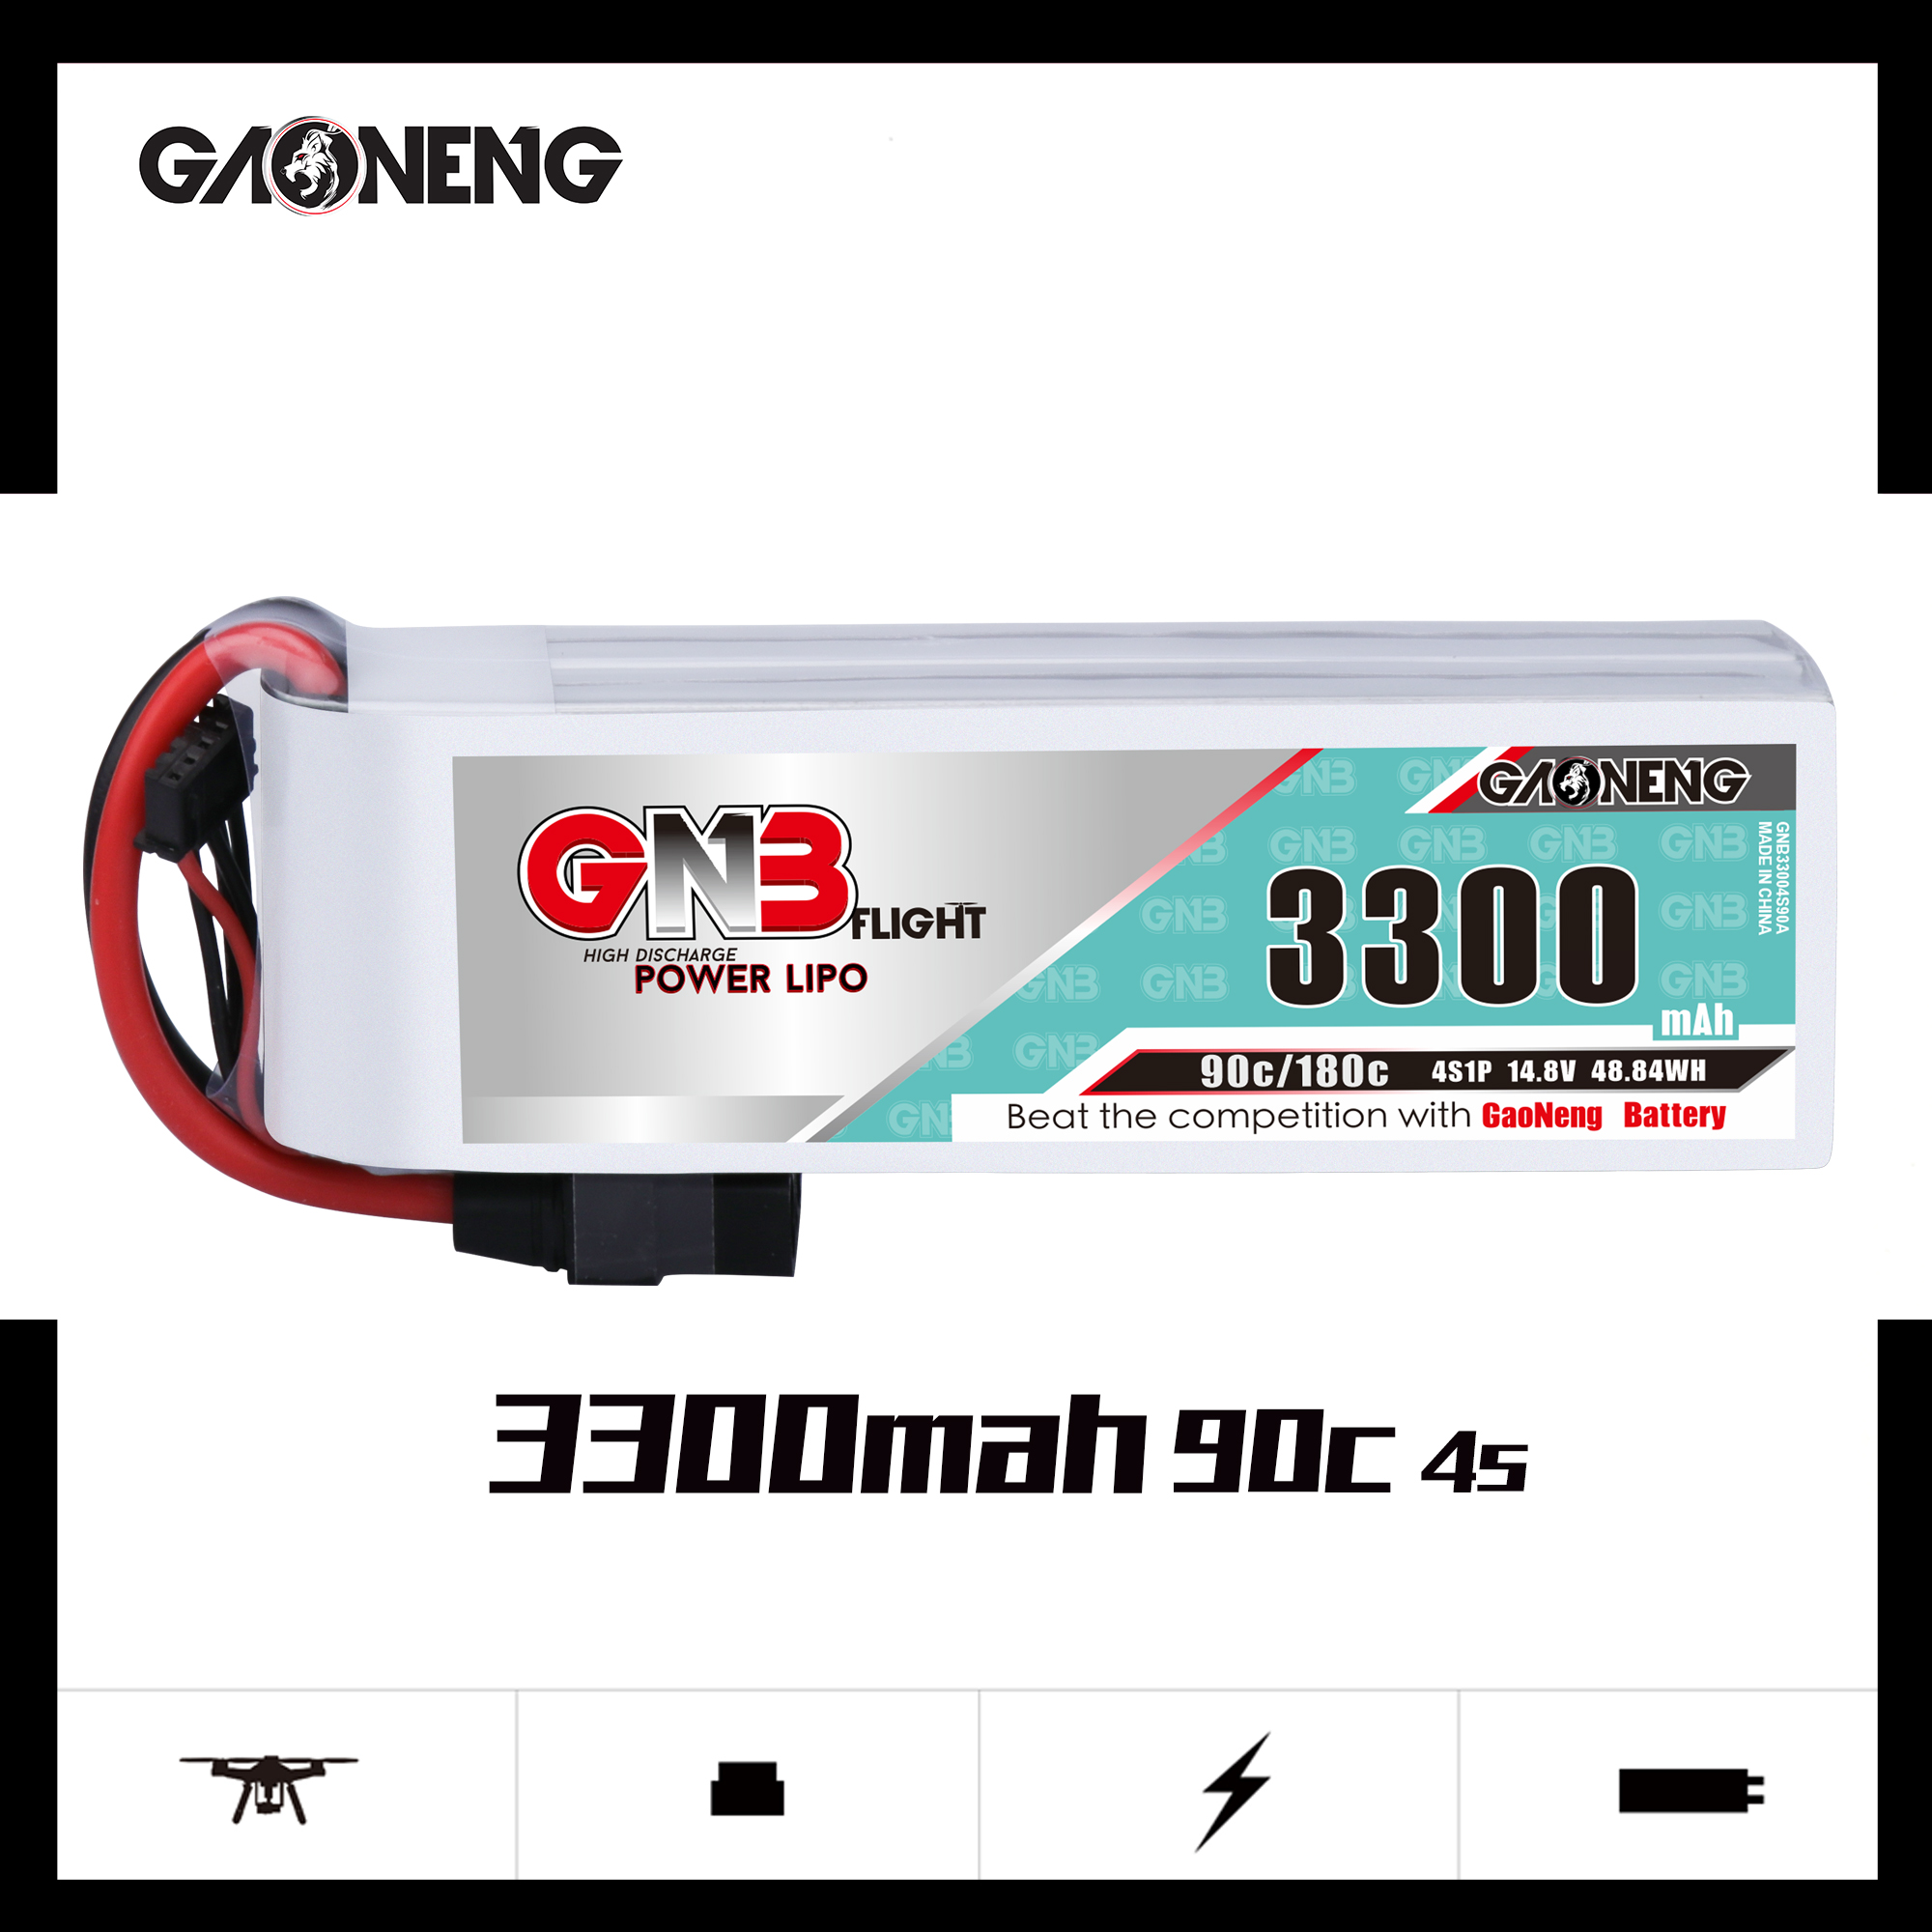 Gaoneng GNB <font><b>3300mAh</b></font> <font><b>4S</b></font> 90C 14.8V Lipo Battery XT60 XT90 T Plug Fixed Wing Vehicle Model Ship High Performance Lithium Battery image